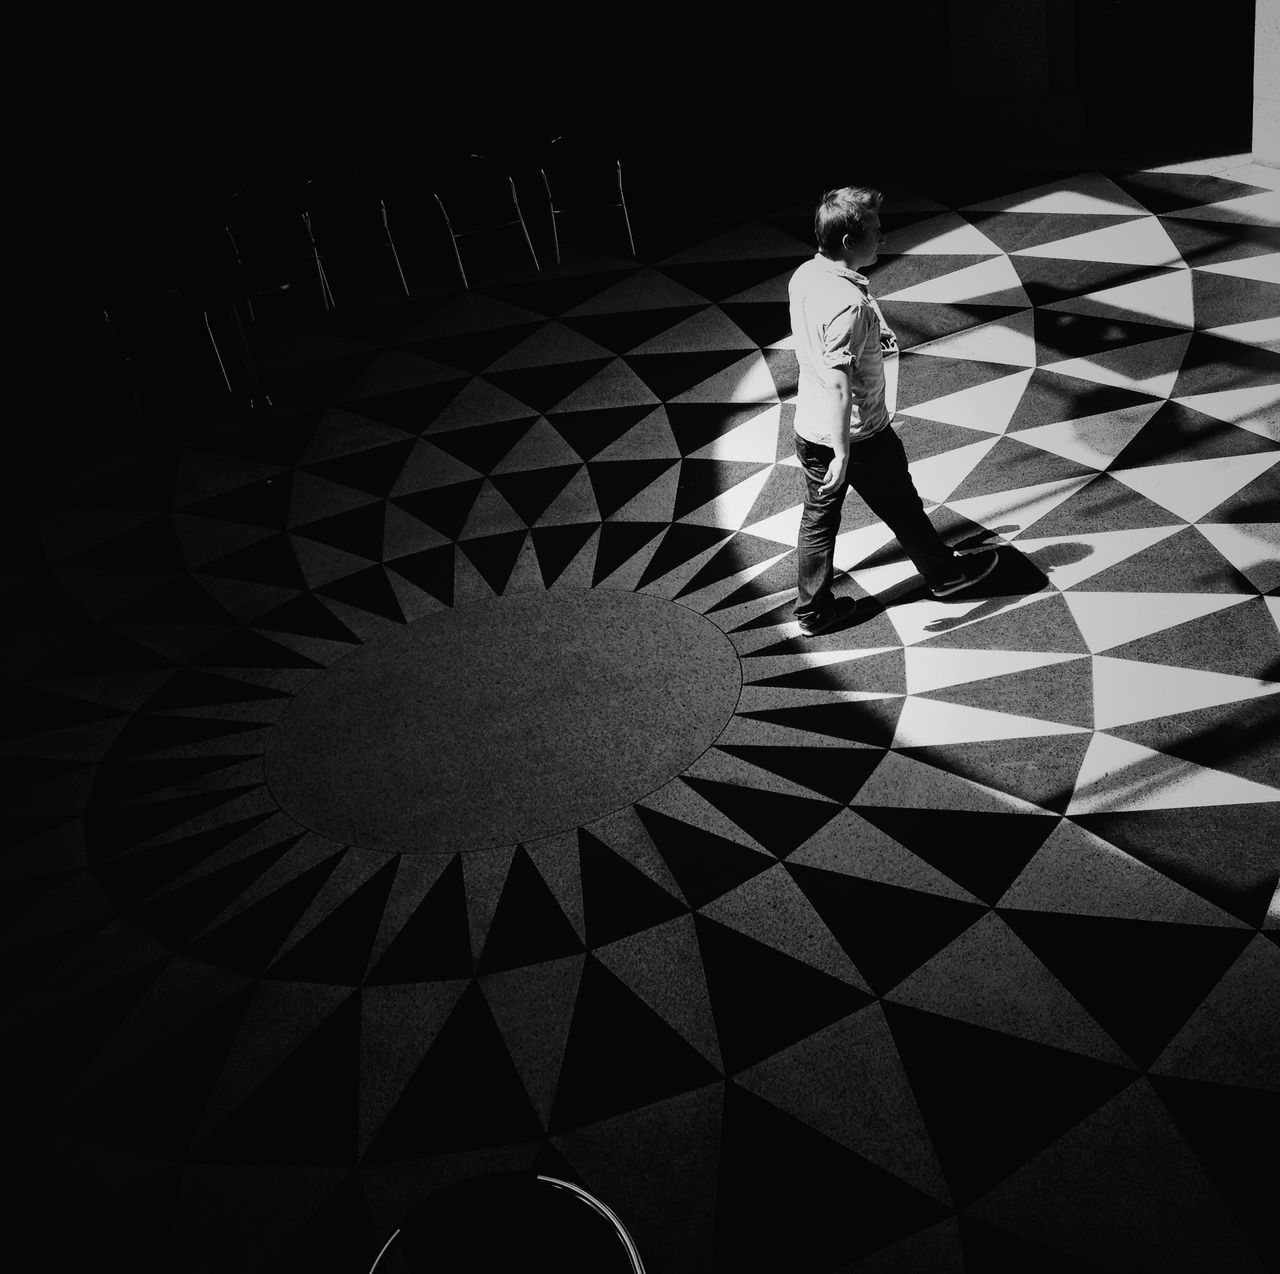 High angle view of man walking on designed flooring